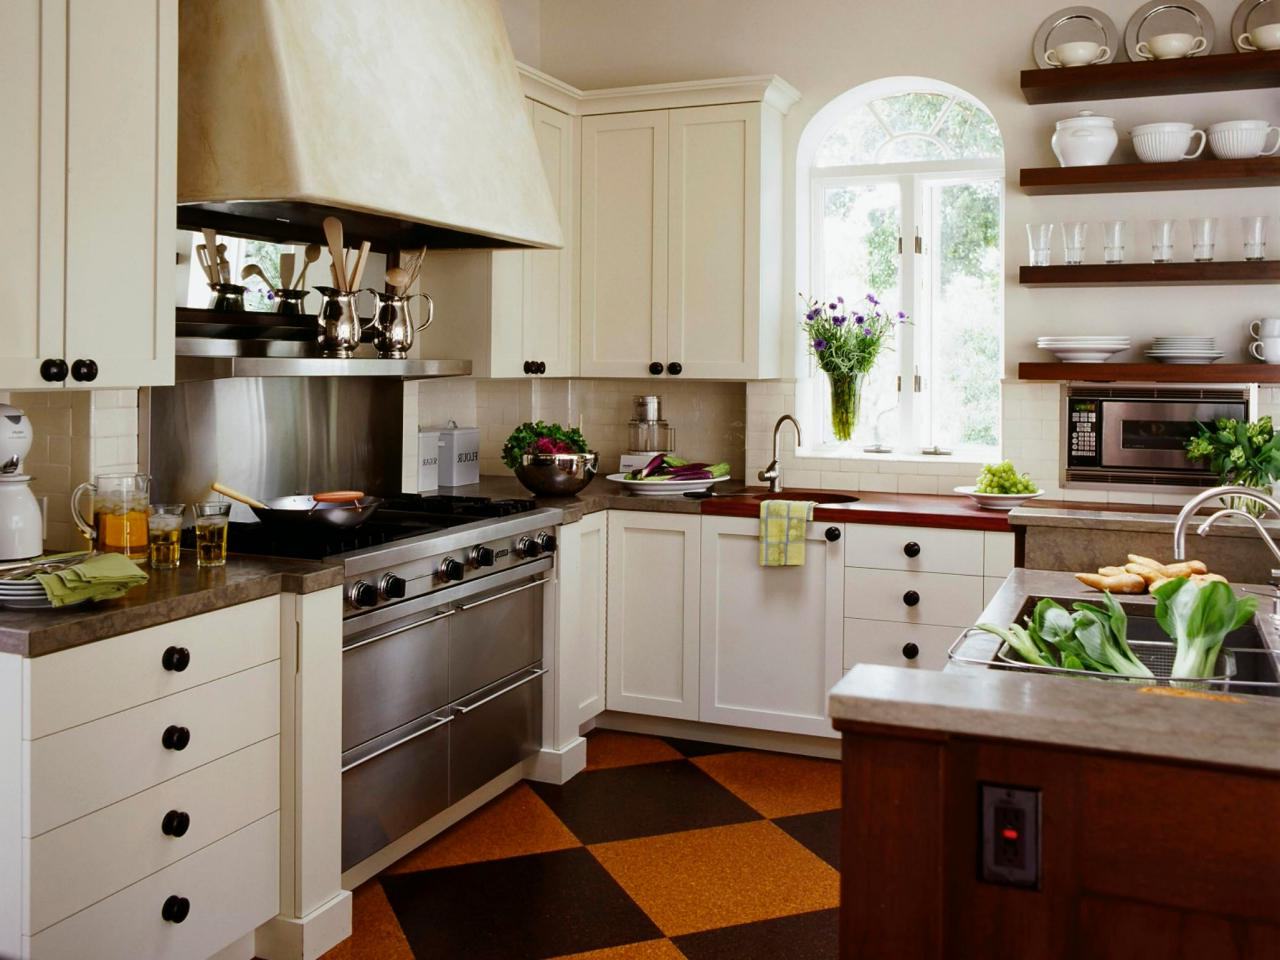 Older Home Kitchen Remodeling Ideas | Roy Home Design